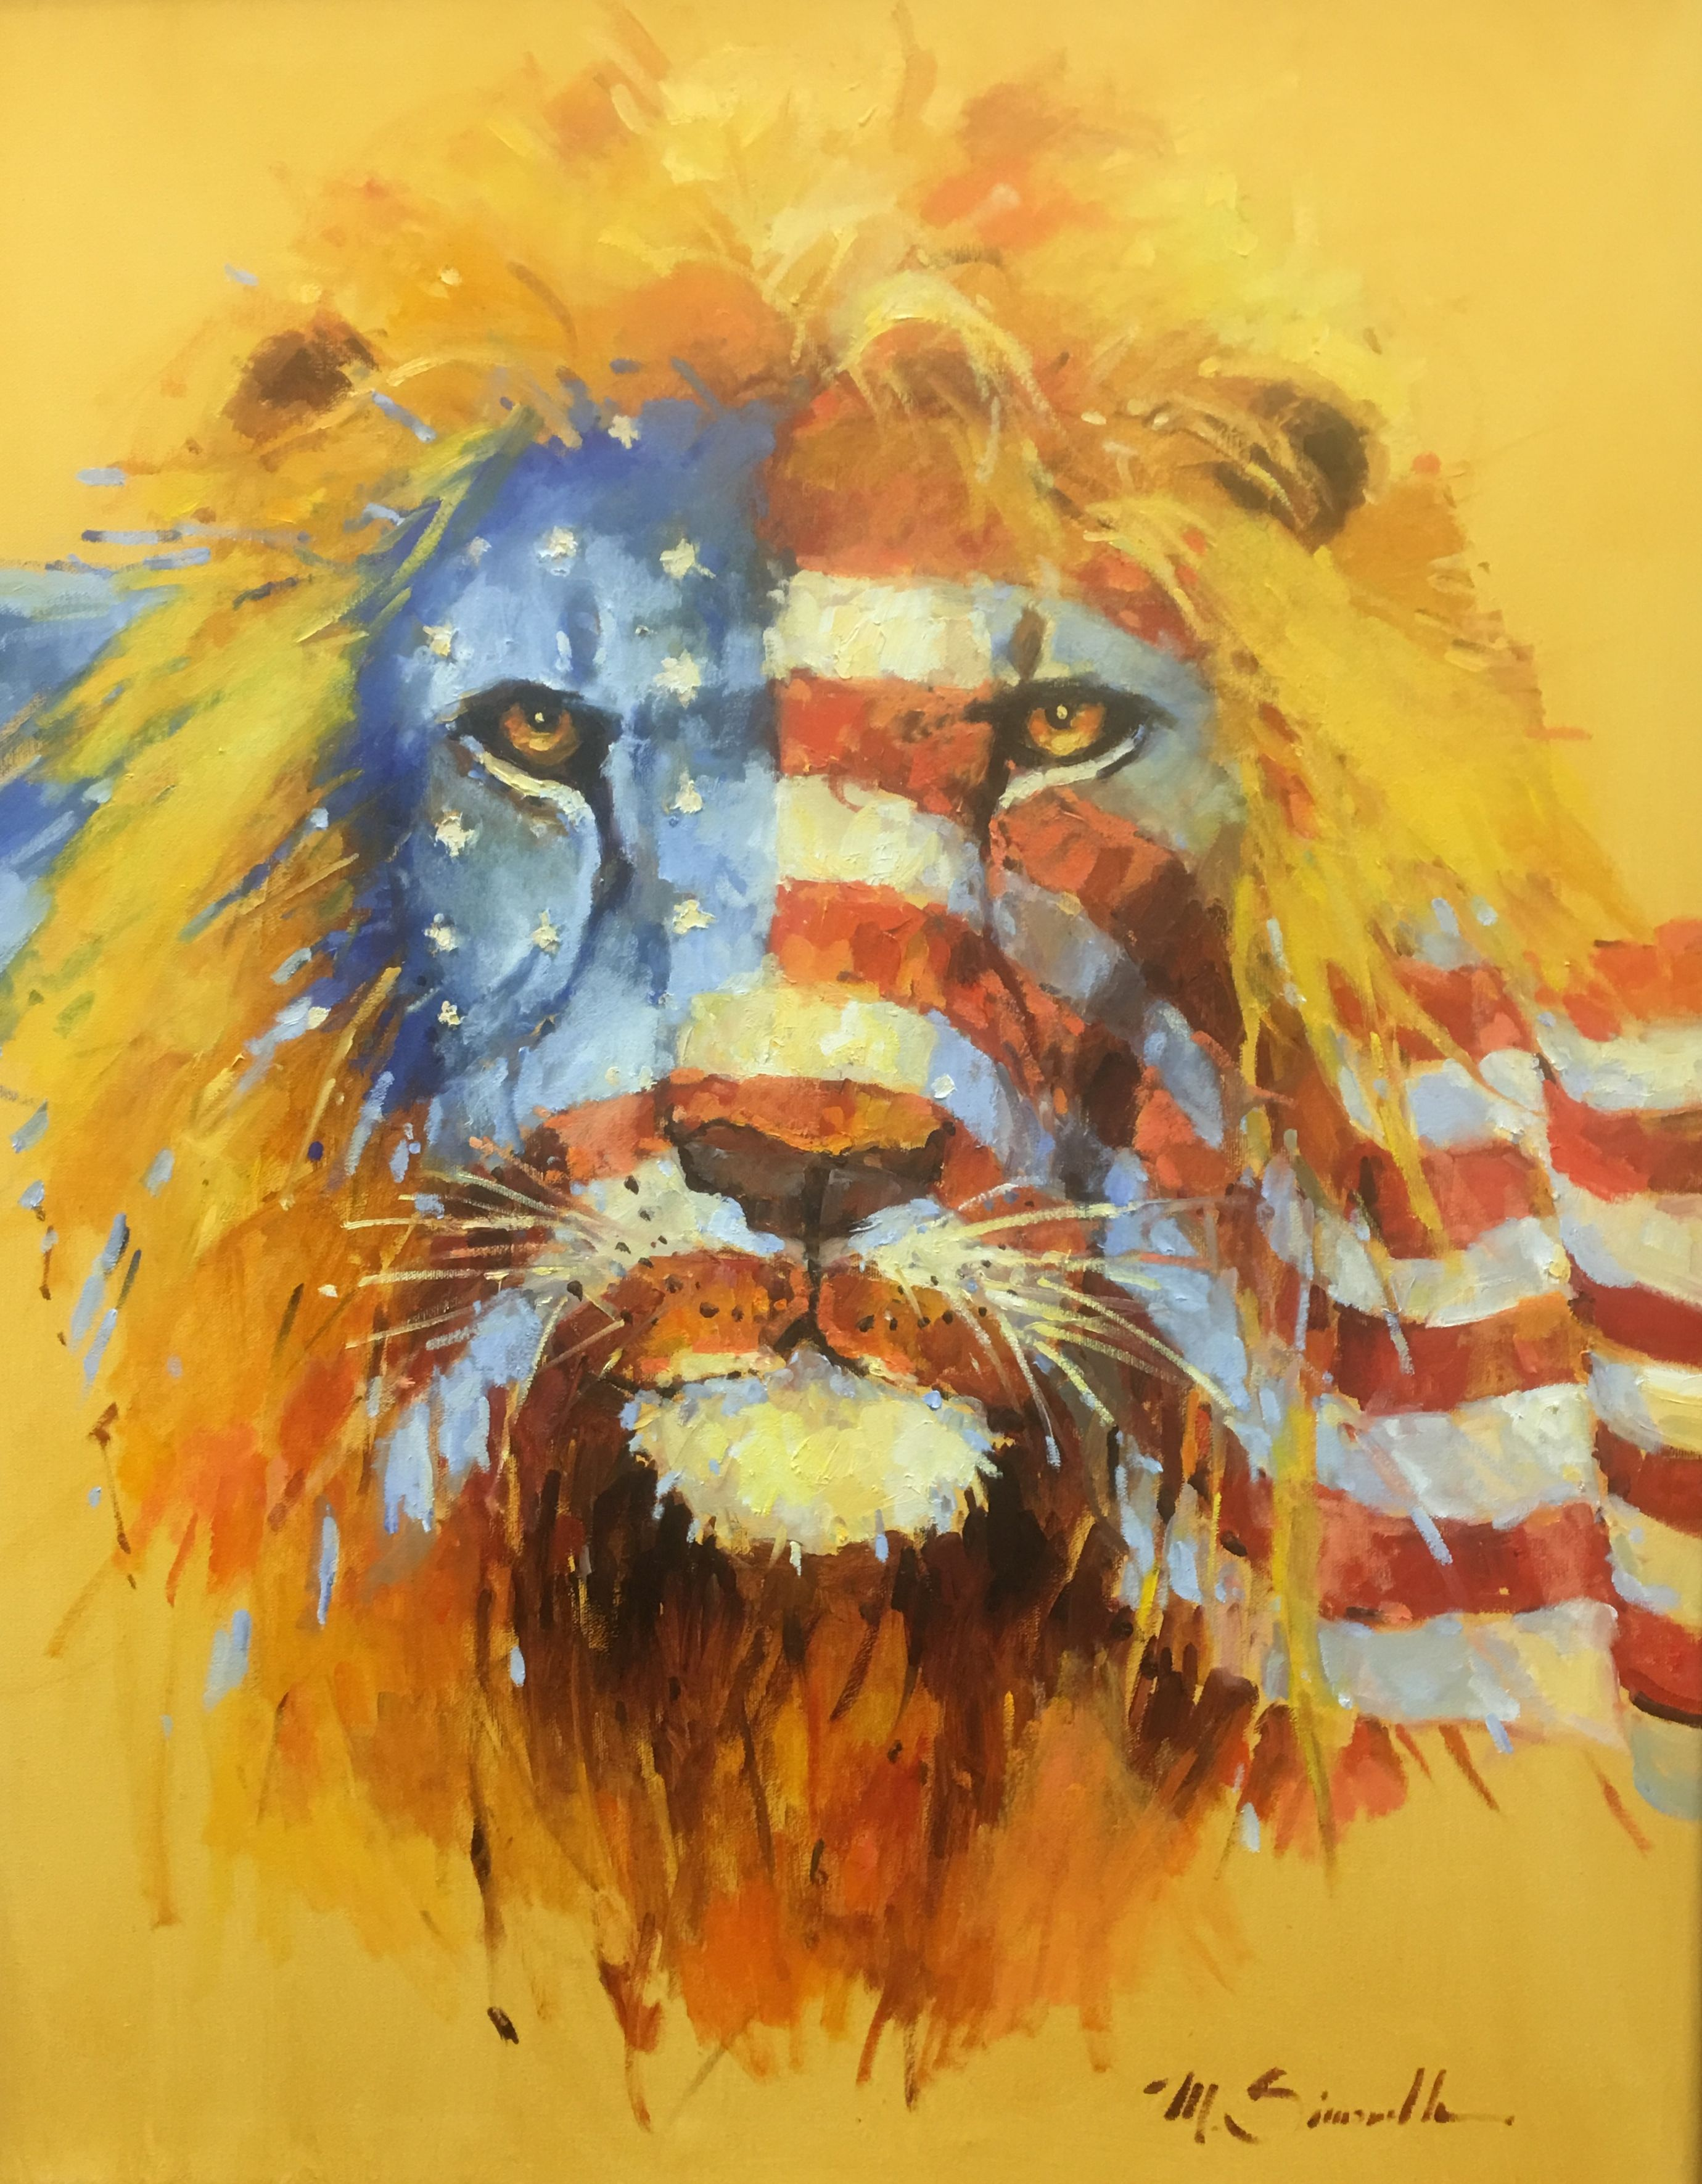 Image Available With Free Print For The First 30 Who Order Www Marilynsimandle Com Art Inspiration Prophetic Art Lion Of Judah